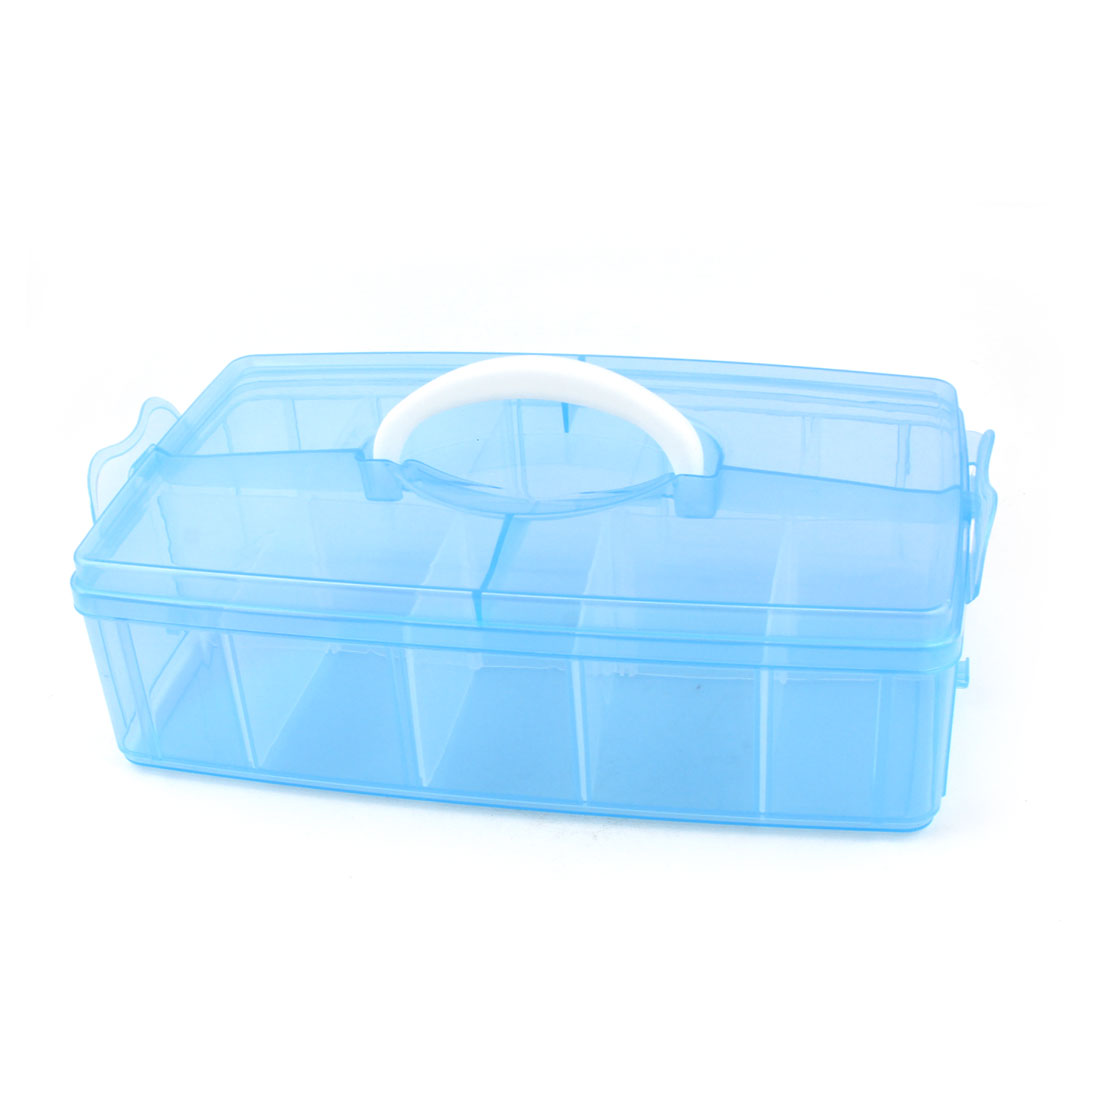 Carry Handle 10 Separable Compartments Rectangle Components Storage Case Blue